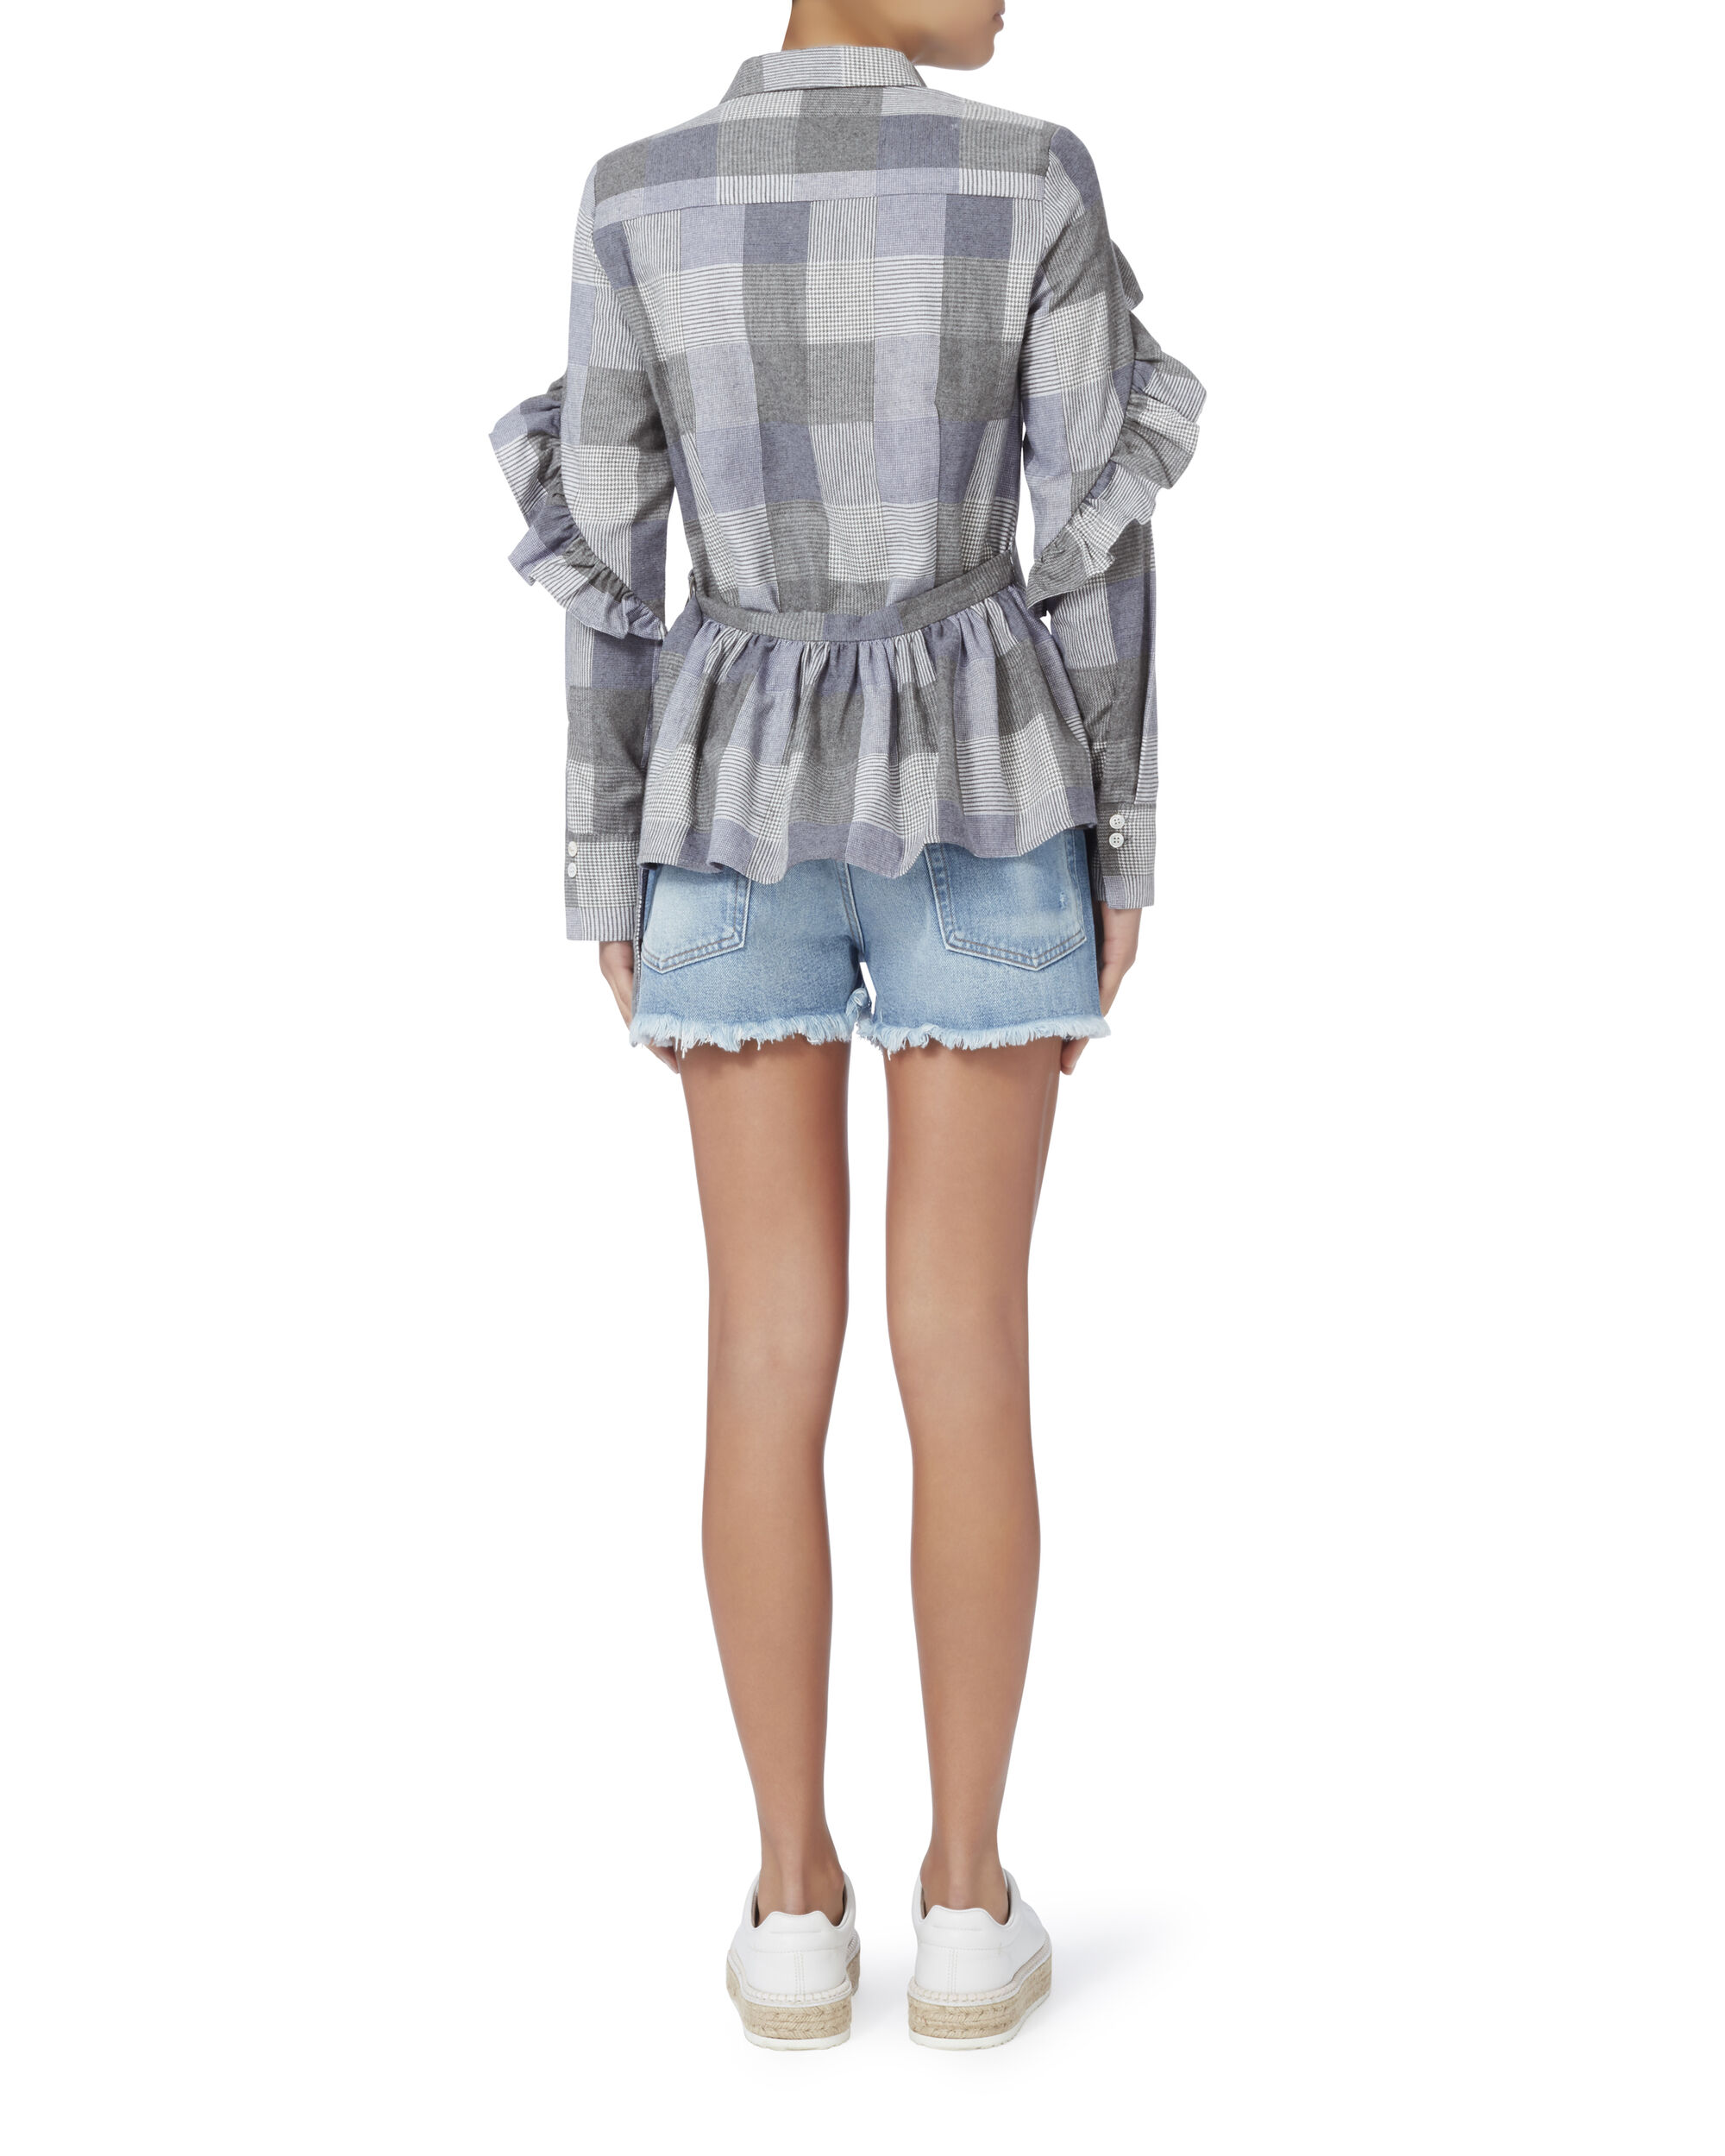 Long-Sleeved Plaid Ruffle Shirt, BLUE-MED 10, hi-res